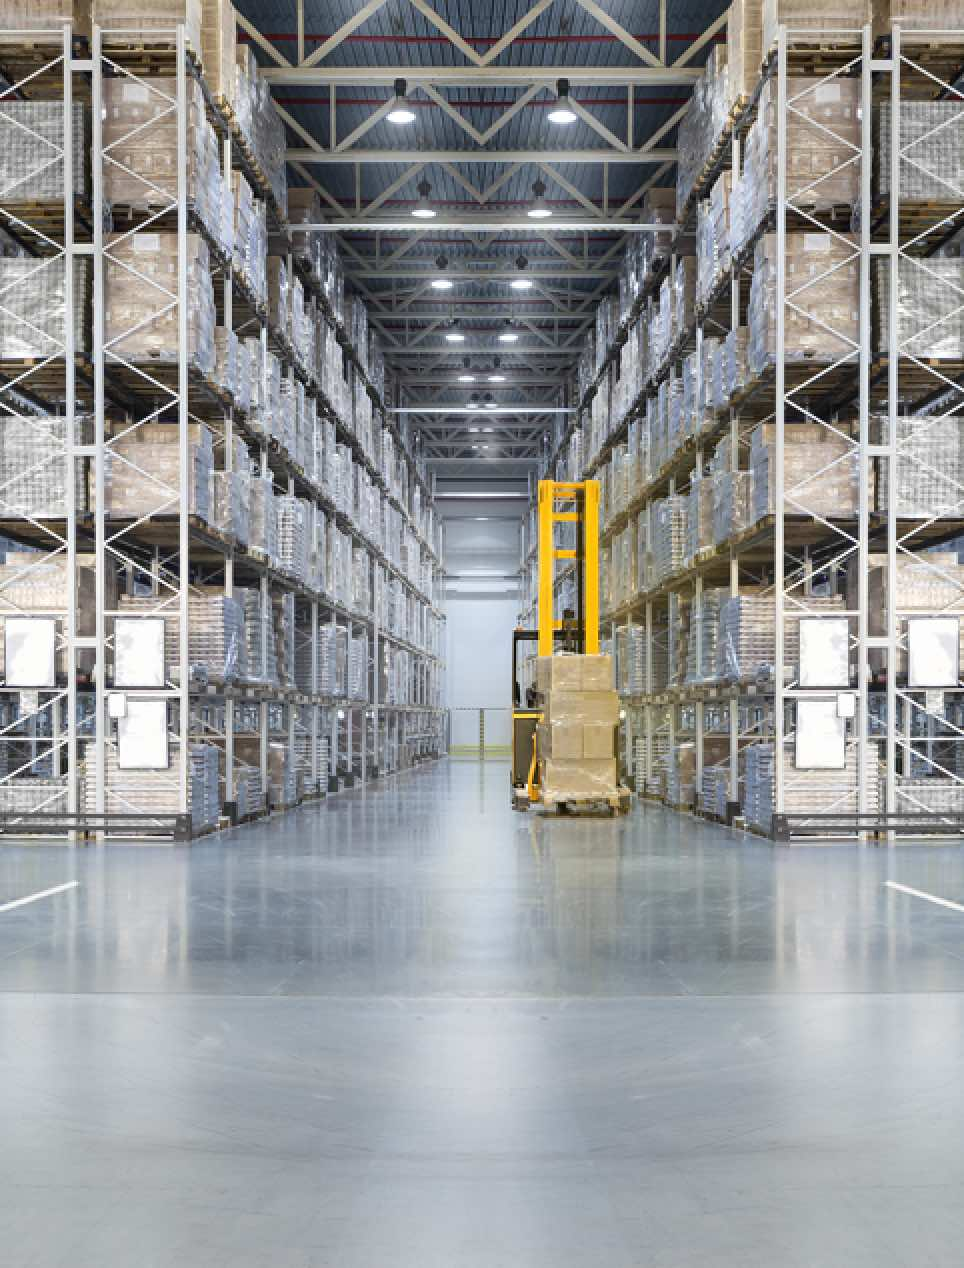 Audit parcel invoice charges from warehouse to delivery